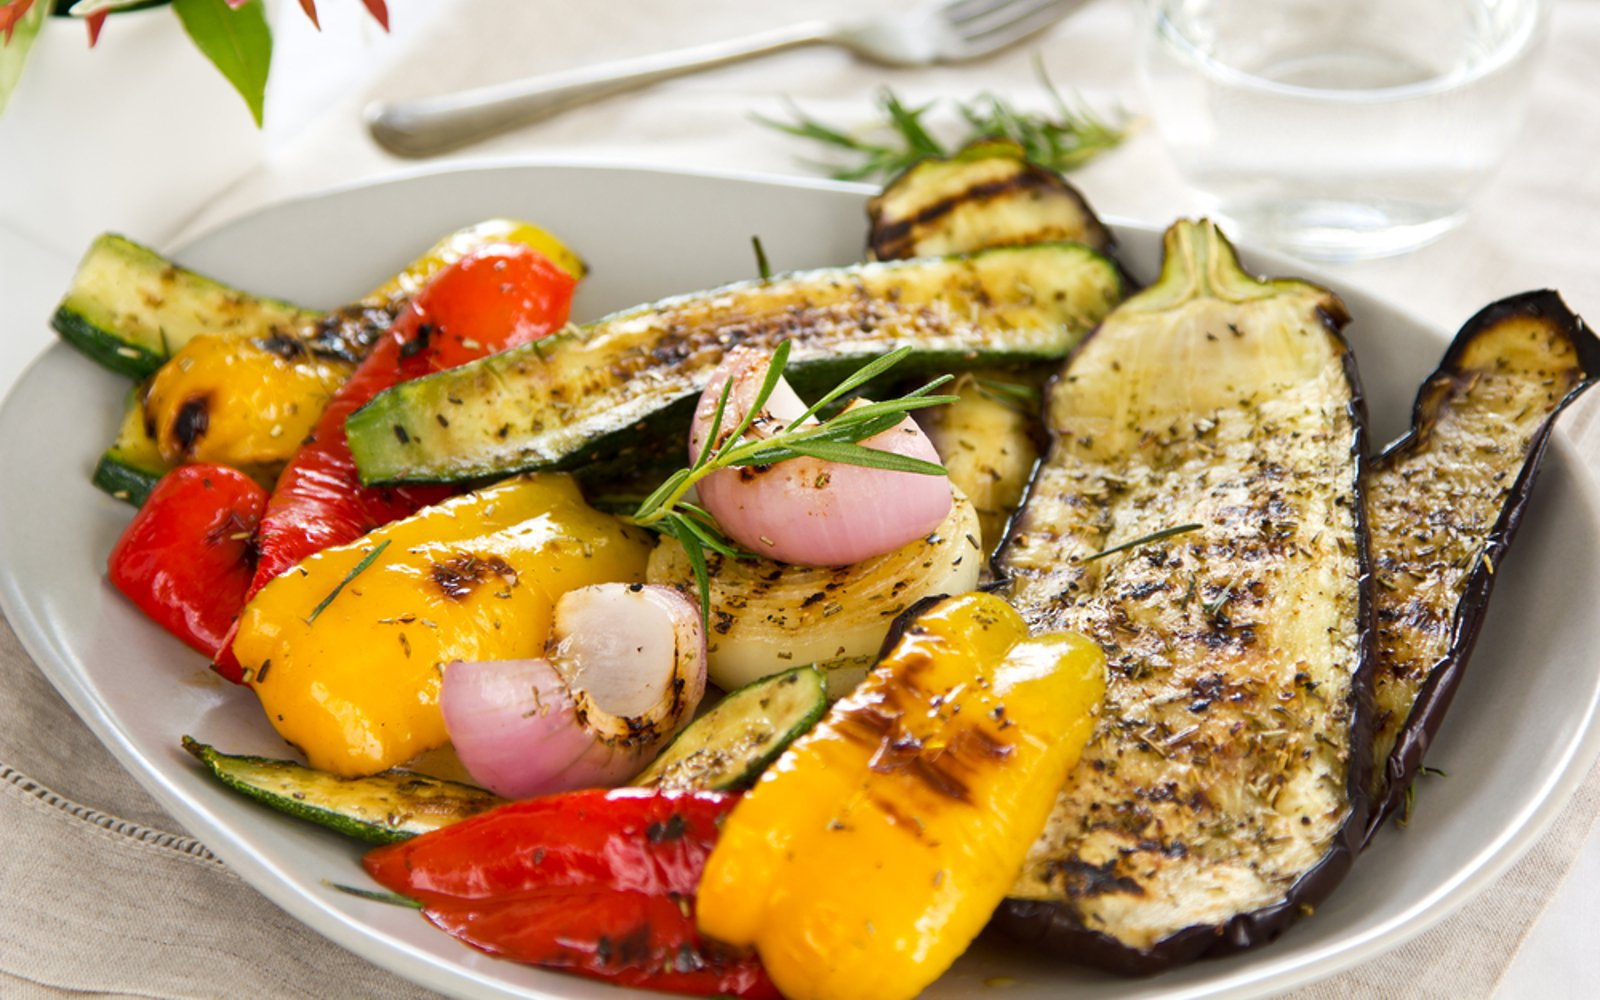 Grilled vegetable variety on a plate